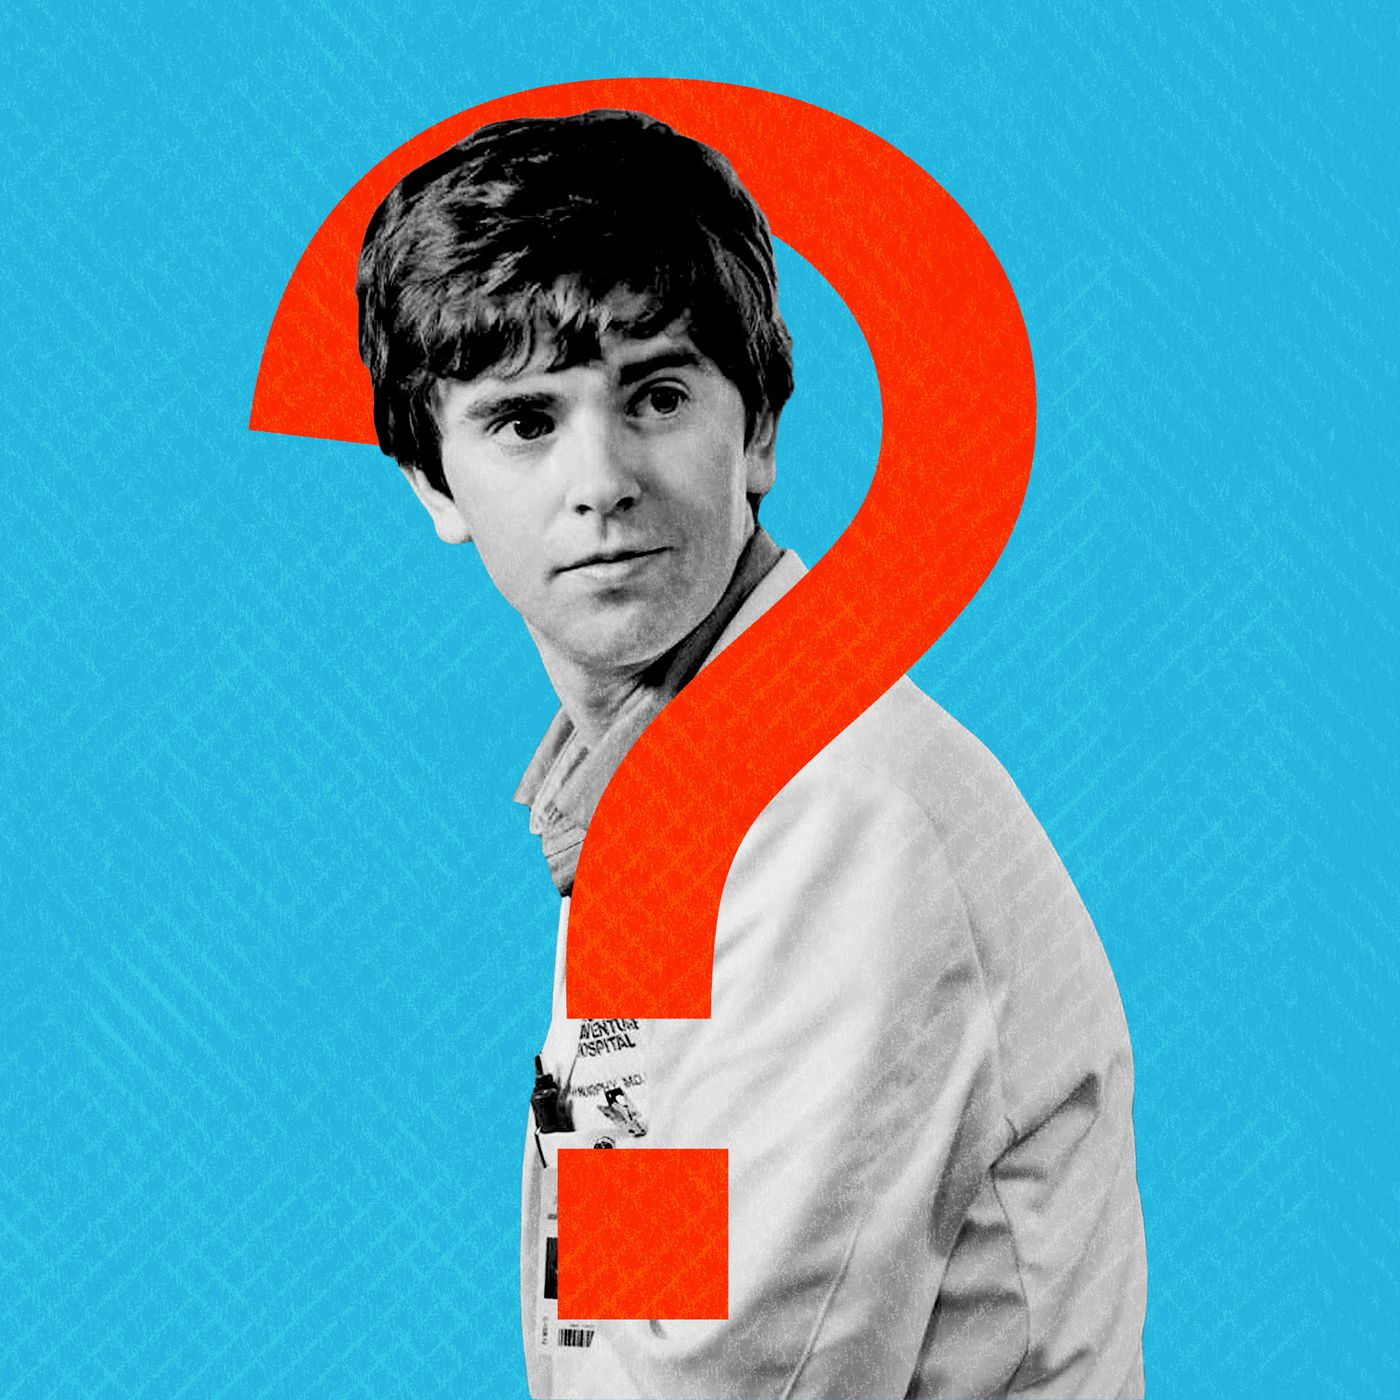 51 Questions About 'The Good Doctor' - The Ringer